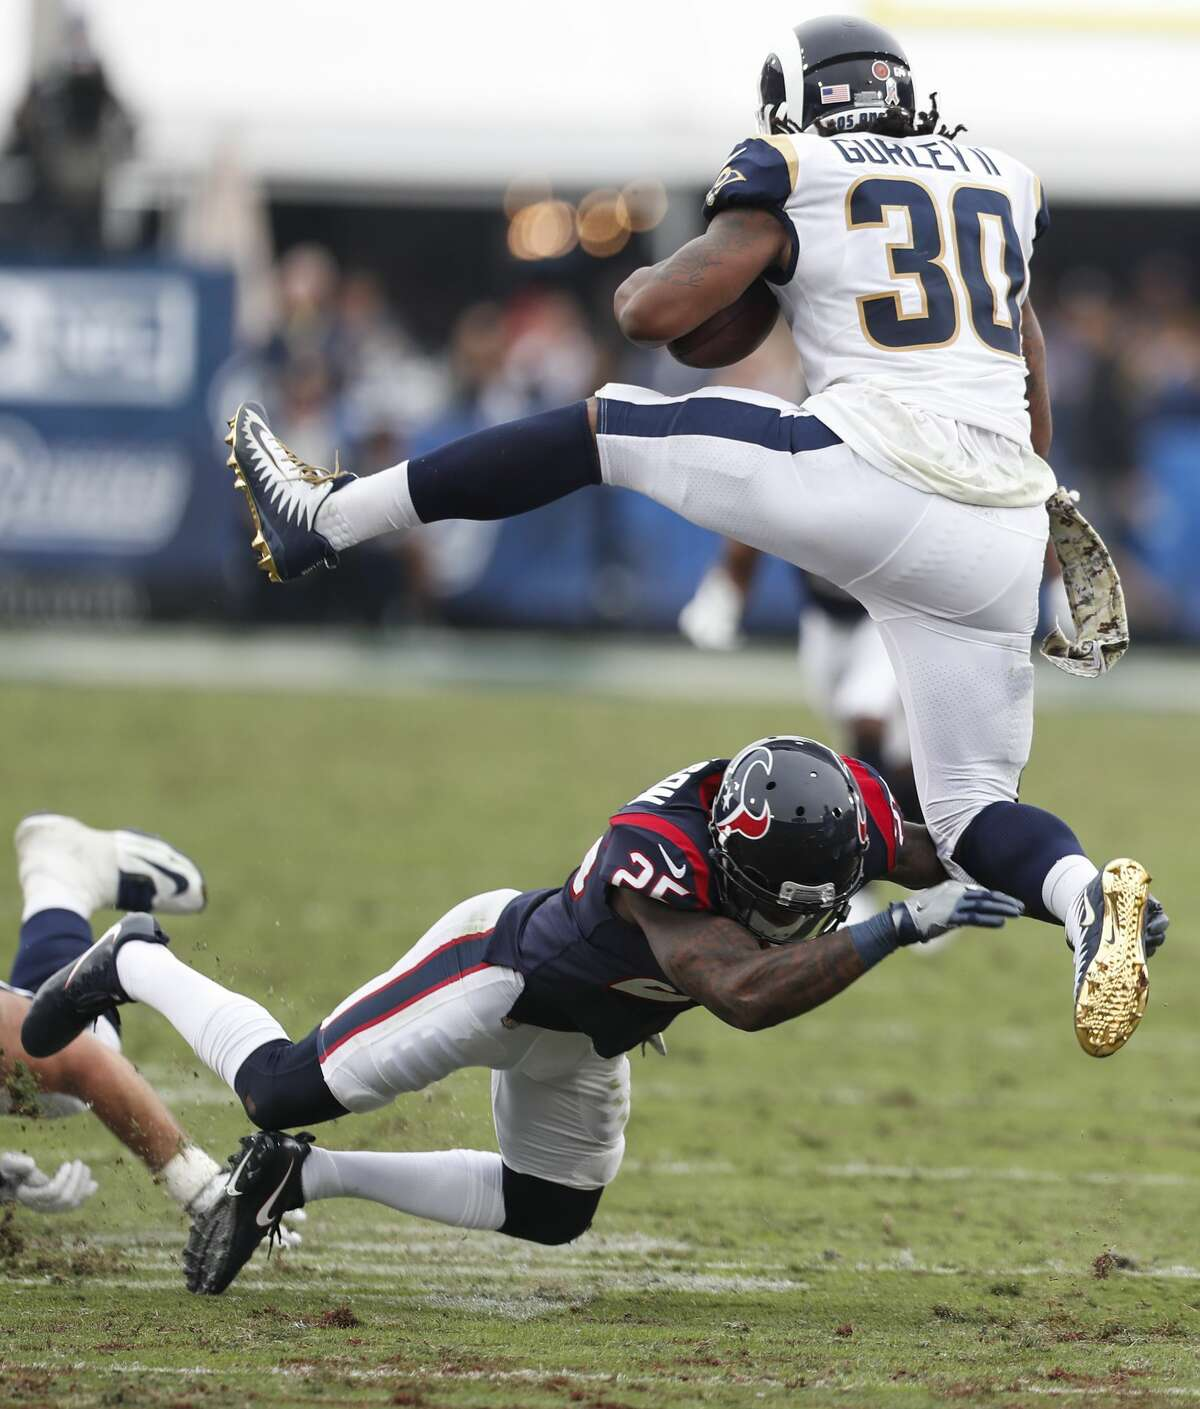 Los Angeles Rams running back Todd Gurley (30) leaps over Houston Texans cornerback Kareem Jackson (25) during the third quarter of an NFL football game at the Los Angeles Memorial Coliseum on Sunday, Nov. 12, 2017, in Los Angeles. ( Brett Coomer / Houston Chronicle )